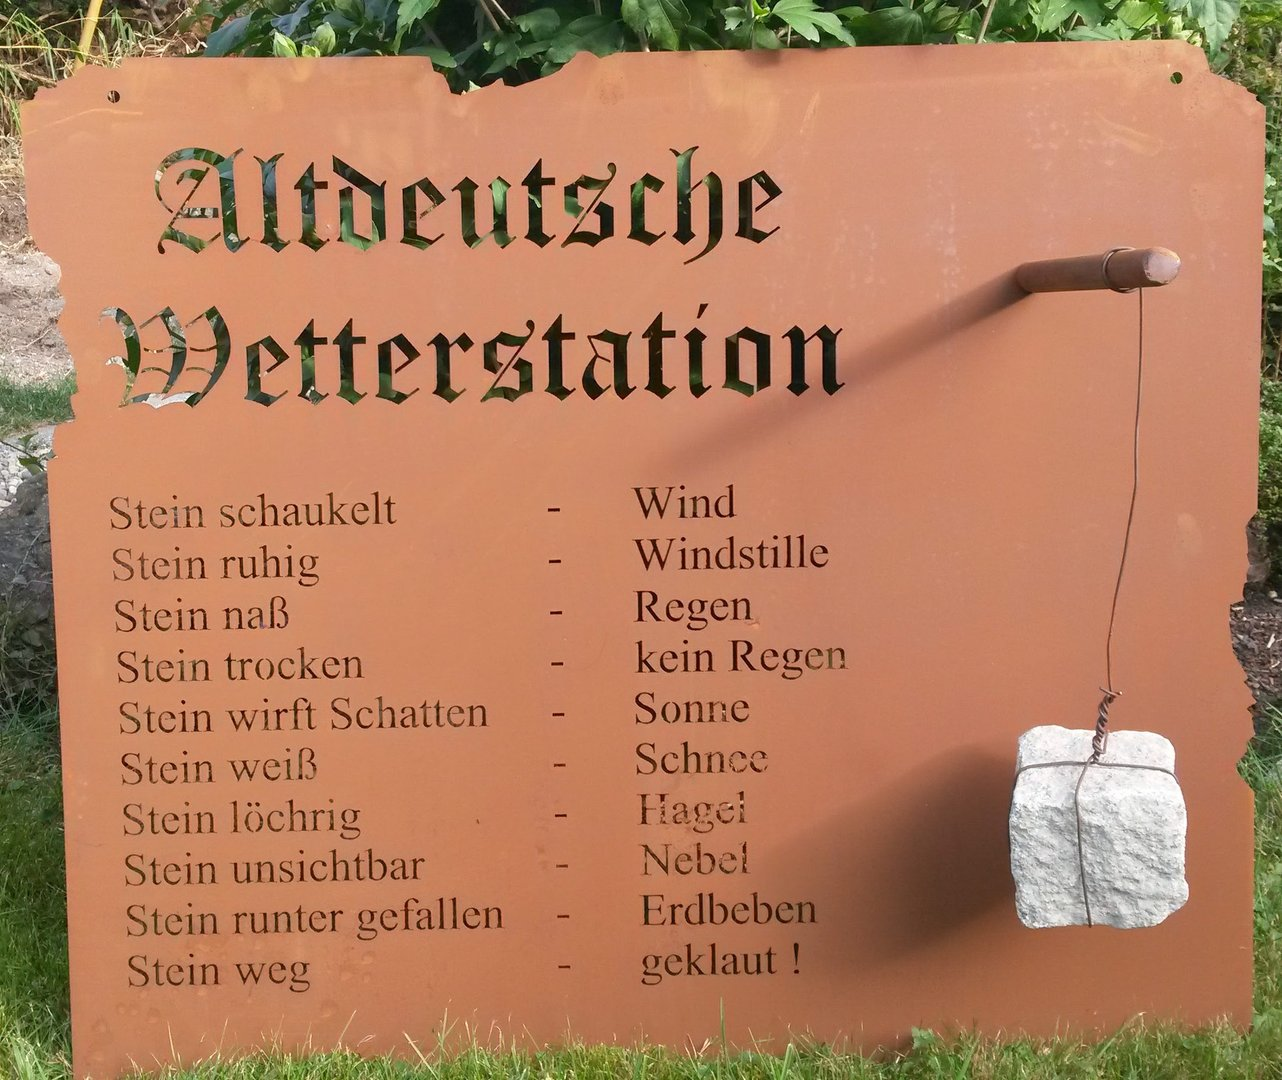 wetterstation garten schild metall rost deko edelrost schild gartendekorationen shop. Black Bedroom Furniture Sets. Home Design Ideas